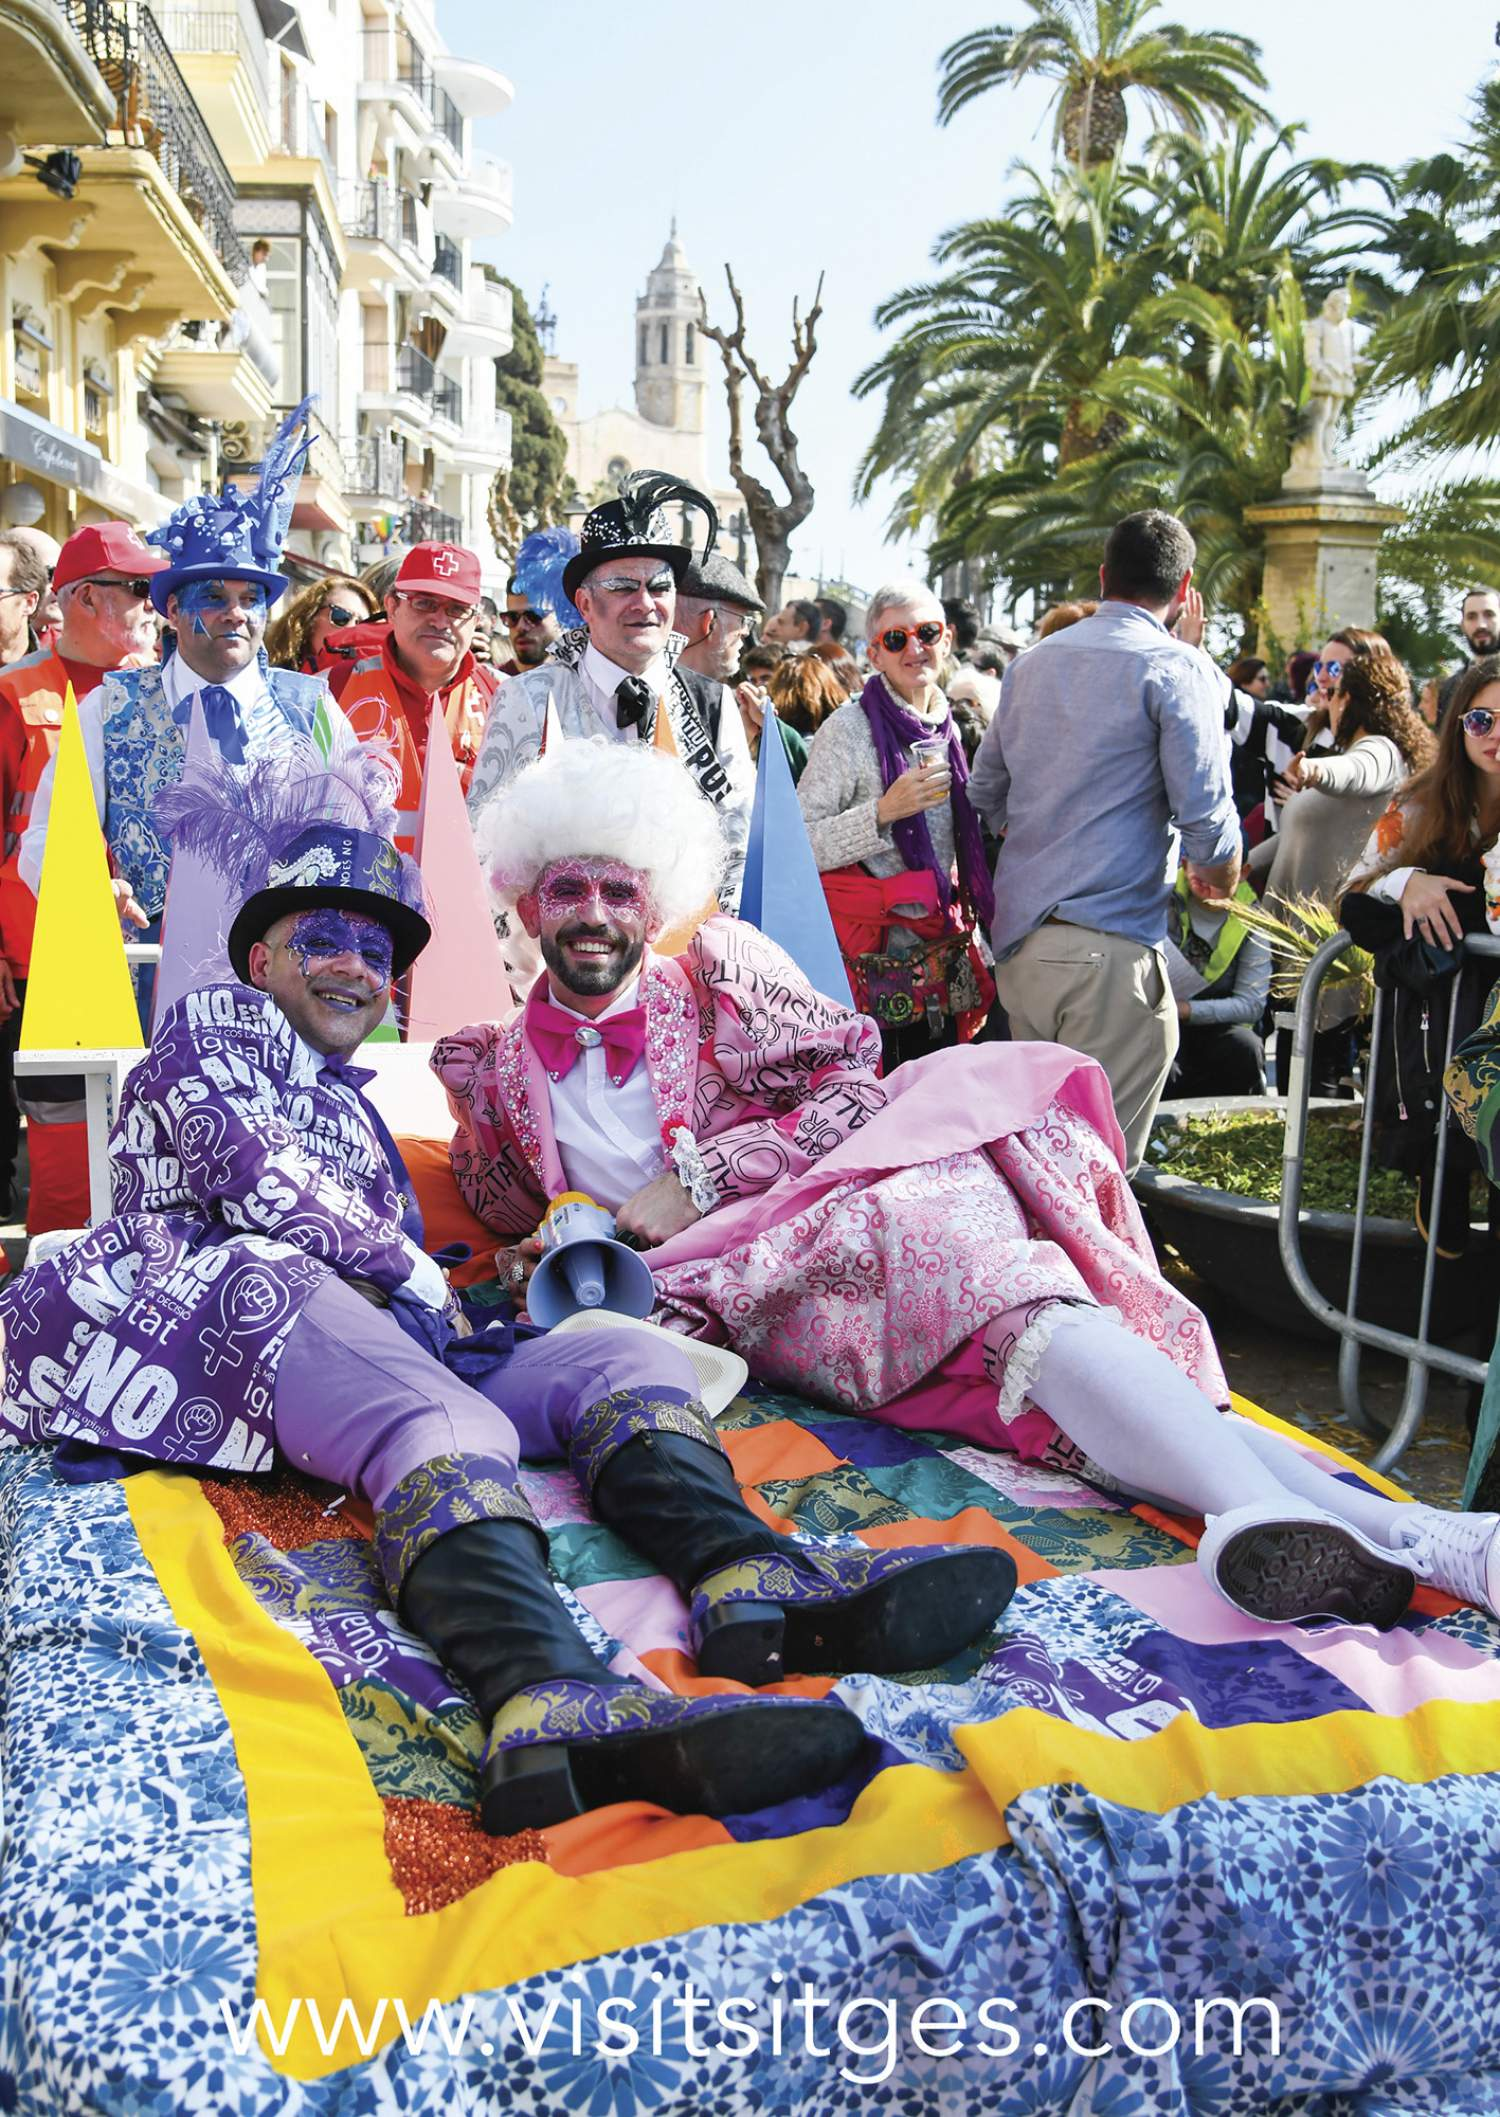 Sitges bed race, Spain